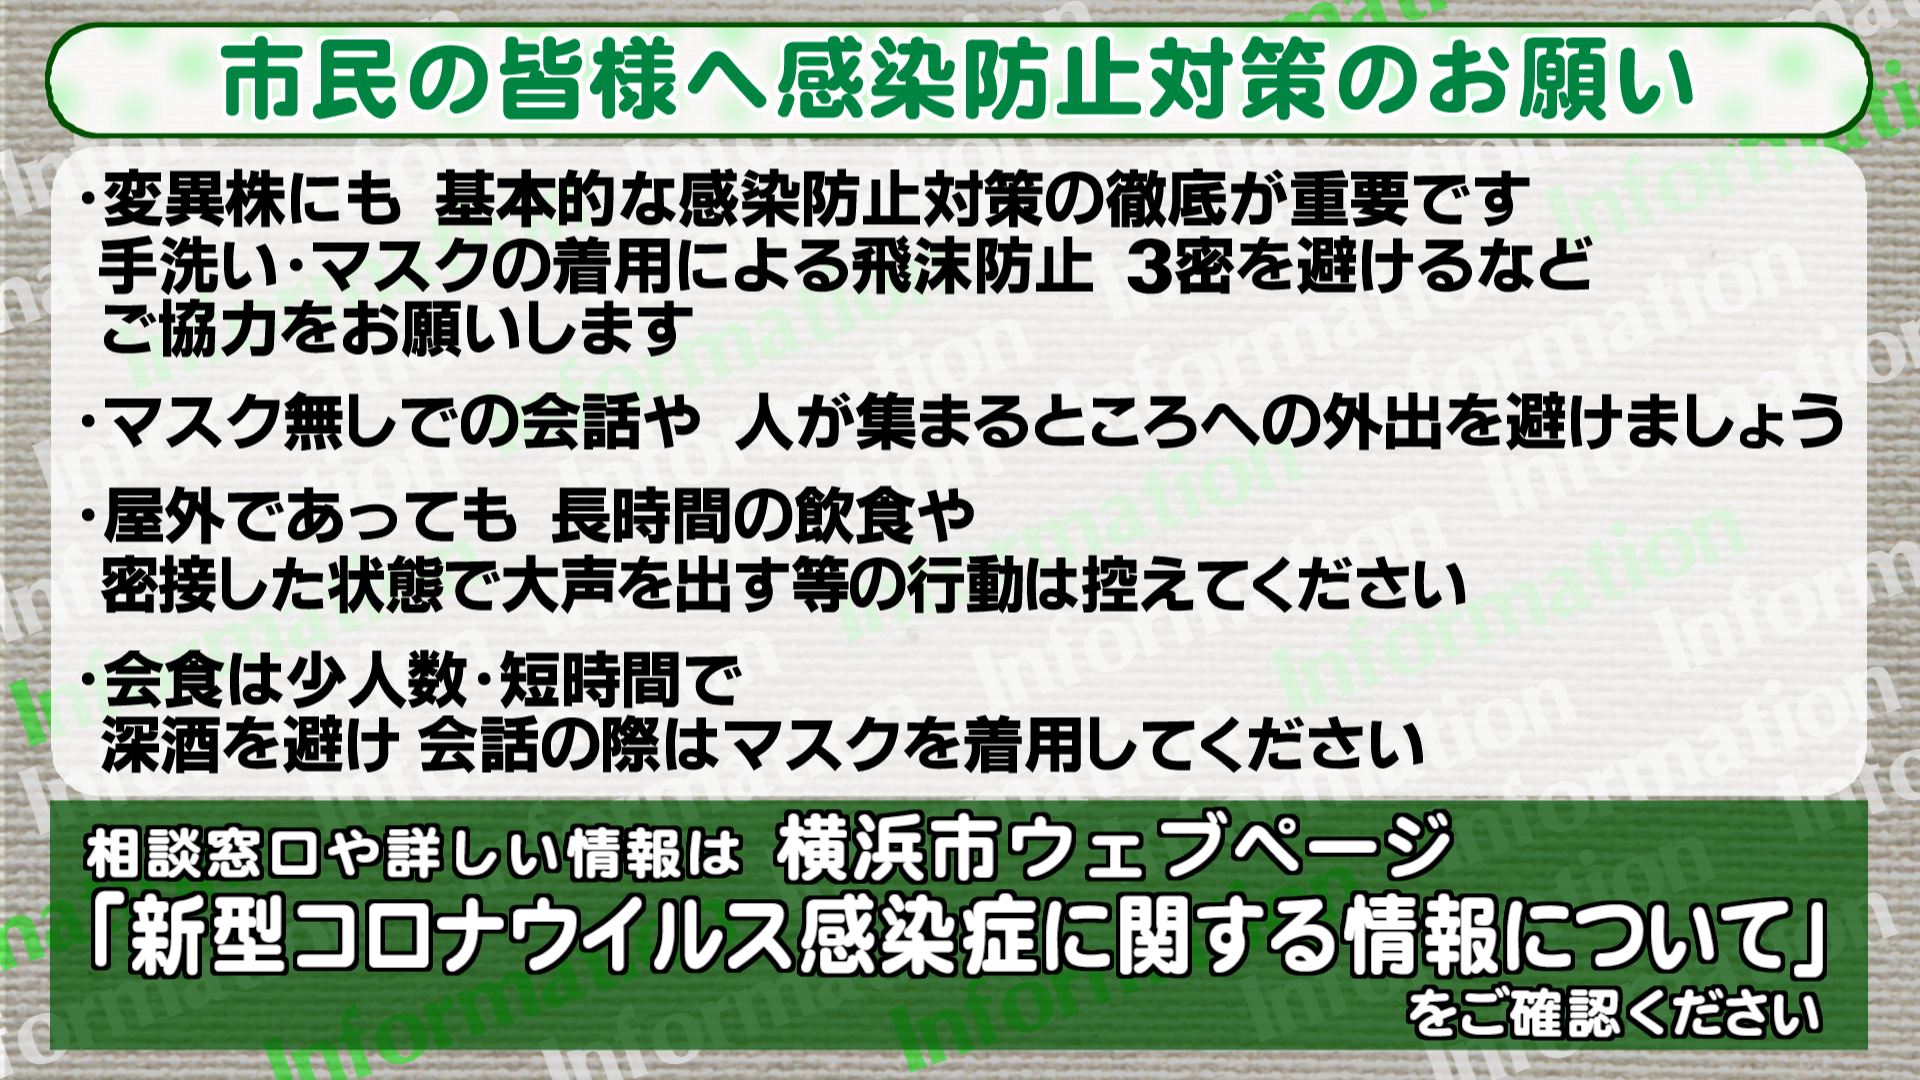 info2.png